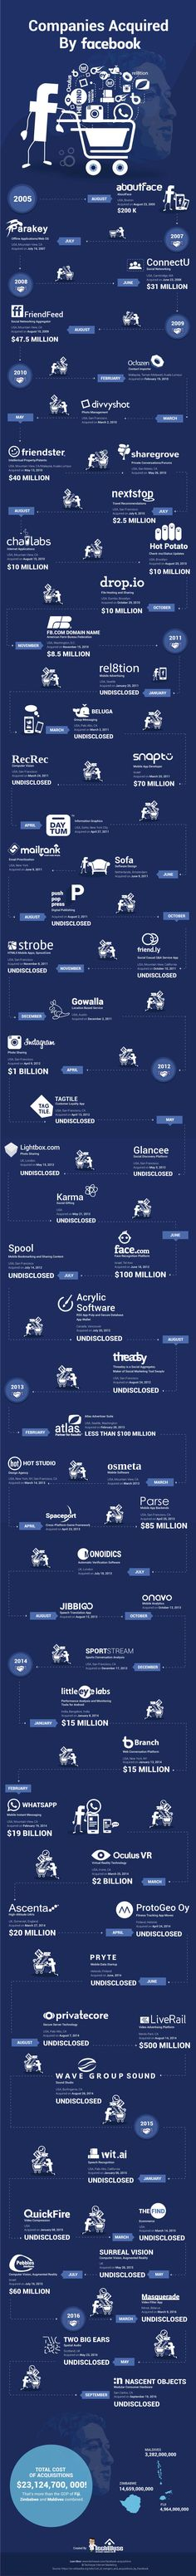 Companies Acquired By Facebook Inc [INFOGRAPHIC]